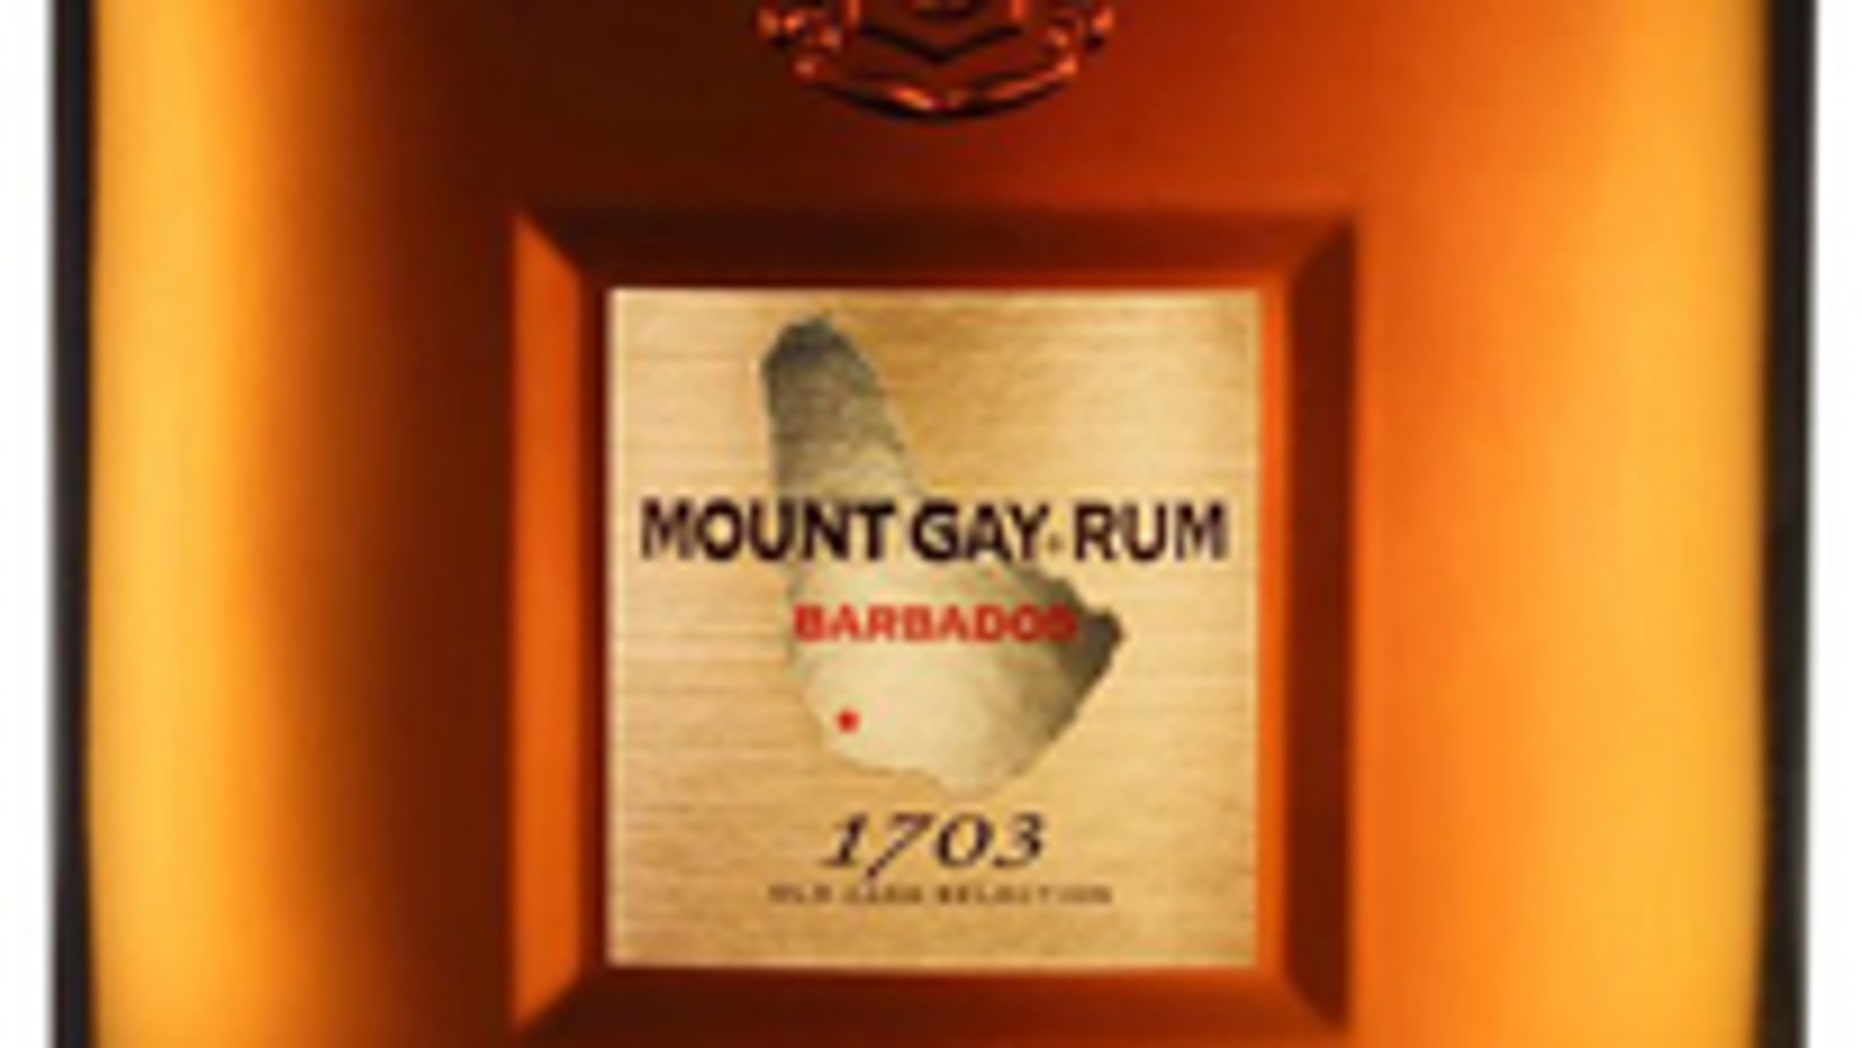 This Mount Gay rum is a cut above the rest.